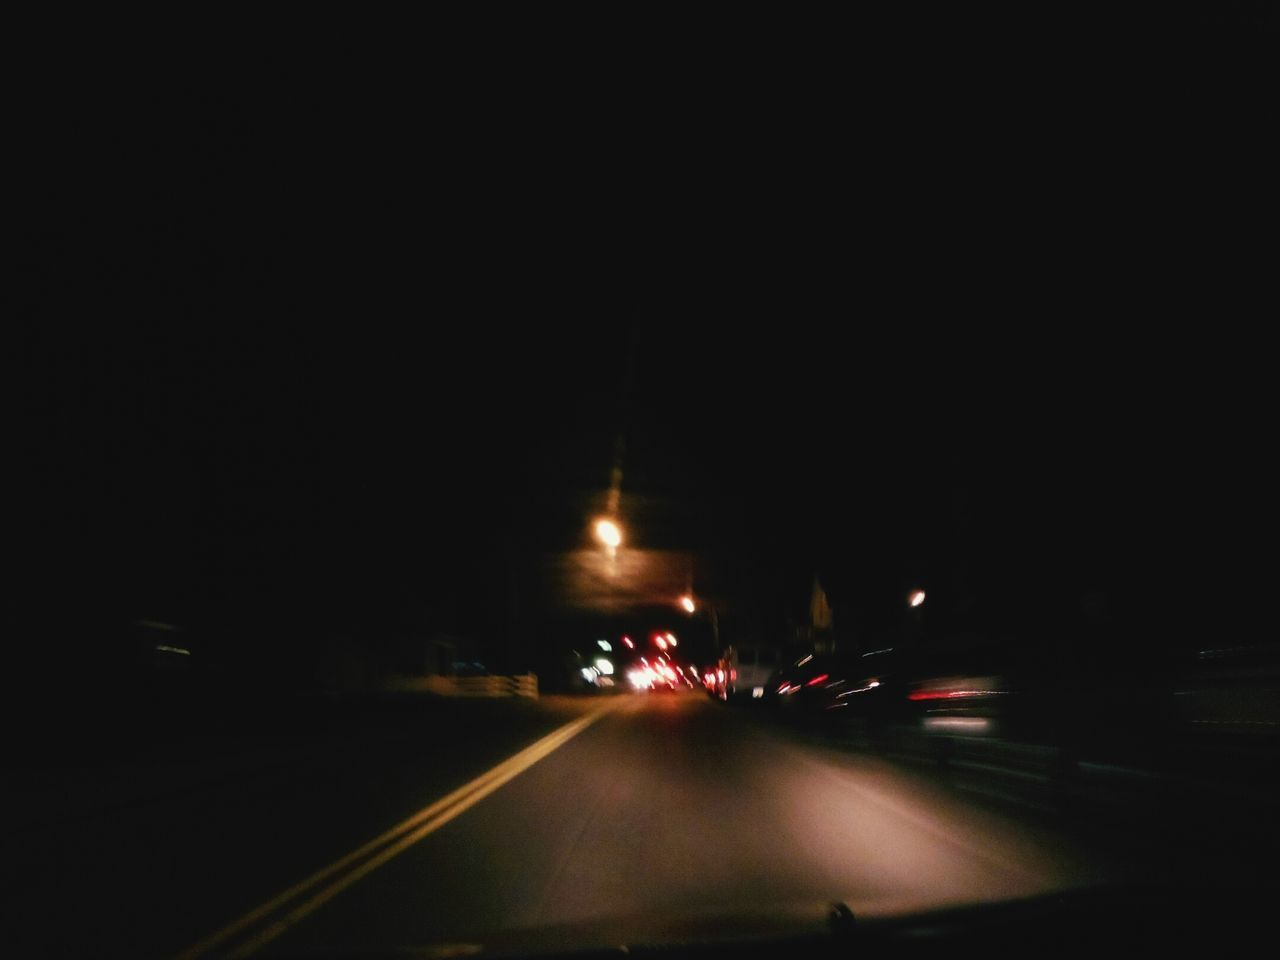 illuminated, night, transportation, mode of transport, blurred motion, speed, road, car, land vehicle, the way forward, travel, motion, no people, outdoors, city